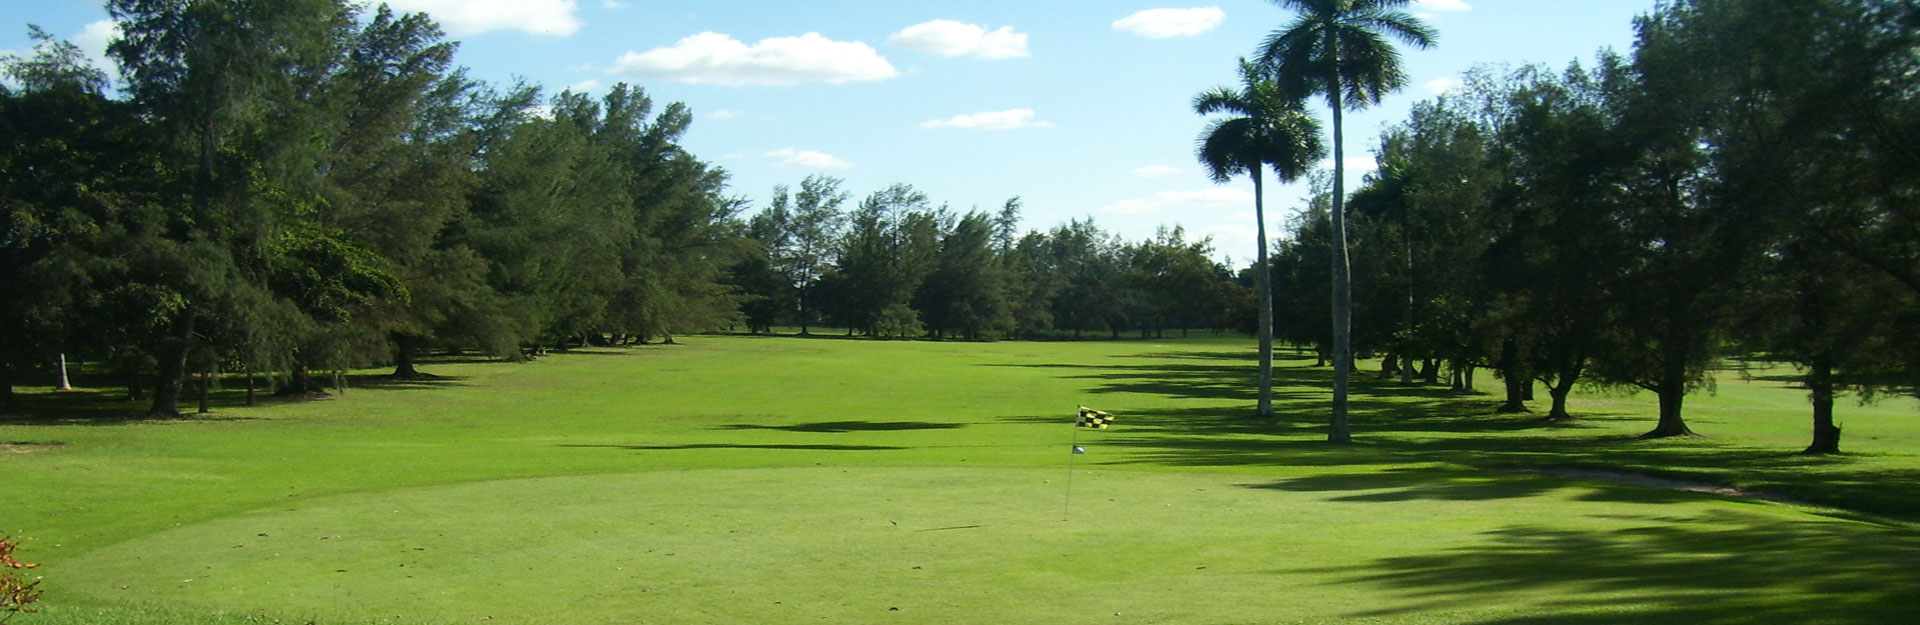 Havana Golf Club, Cuba Travel